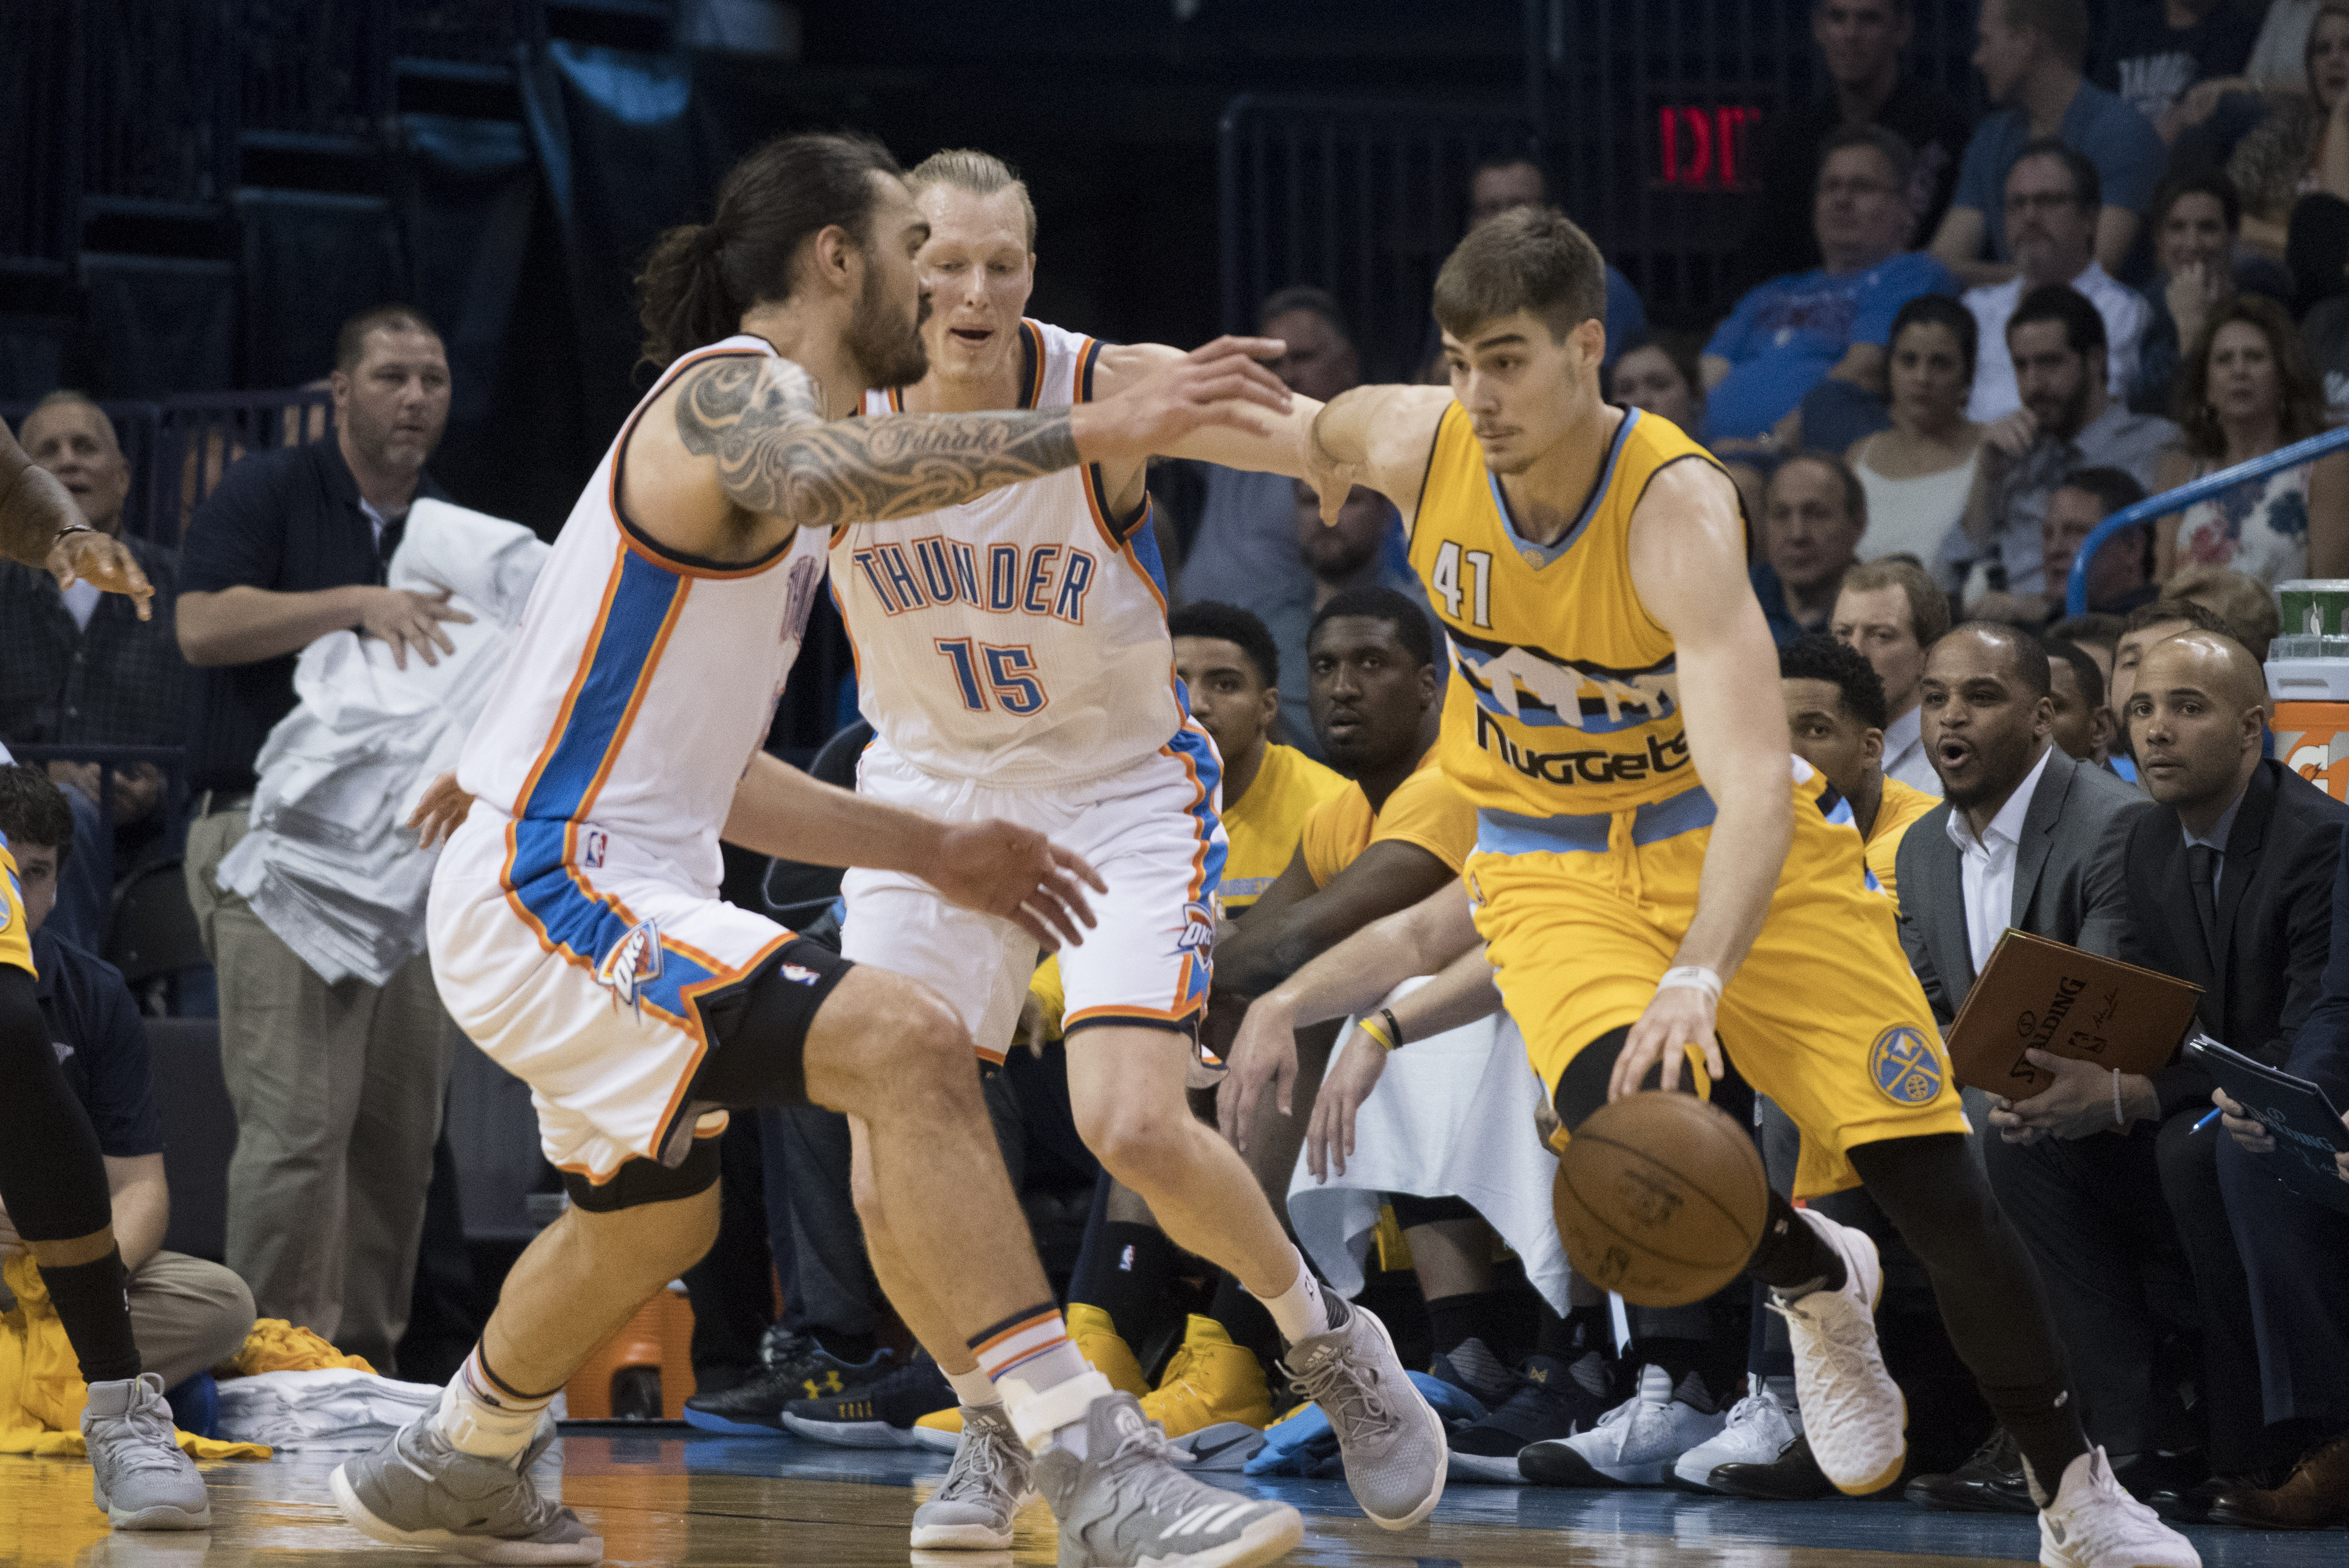 667836602-denver-nuggets-v-oklahoma-city-thunder.jpg